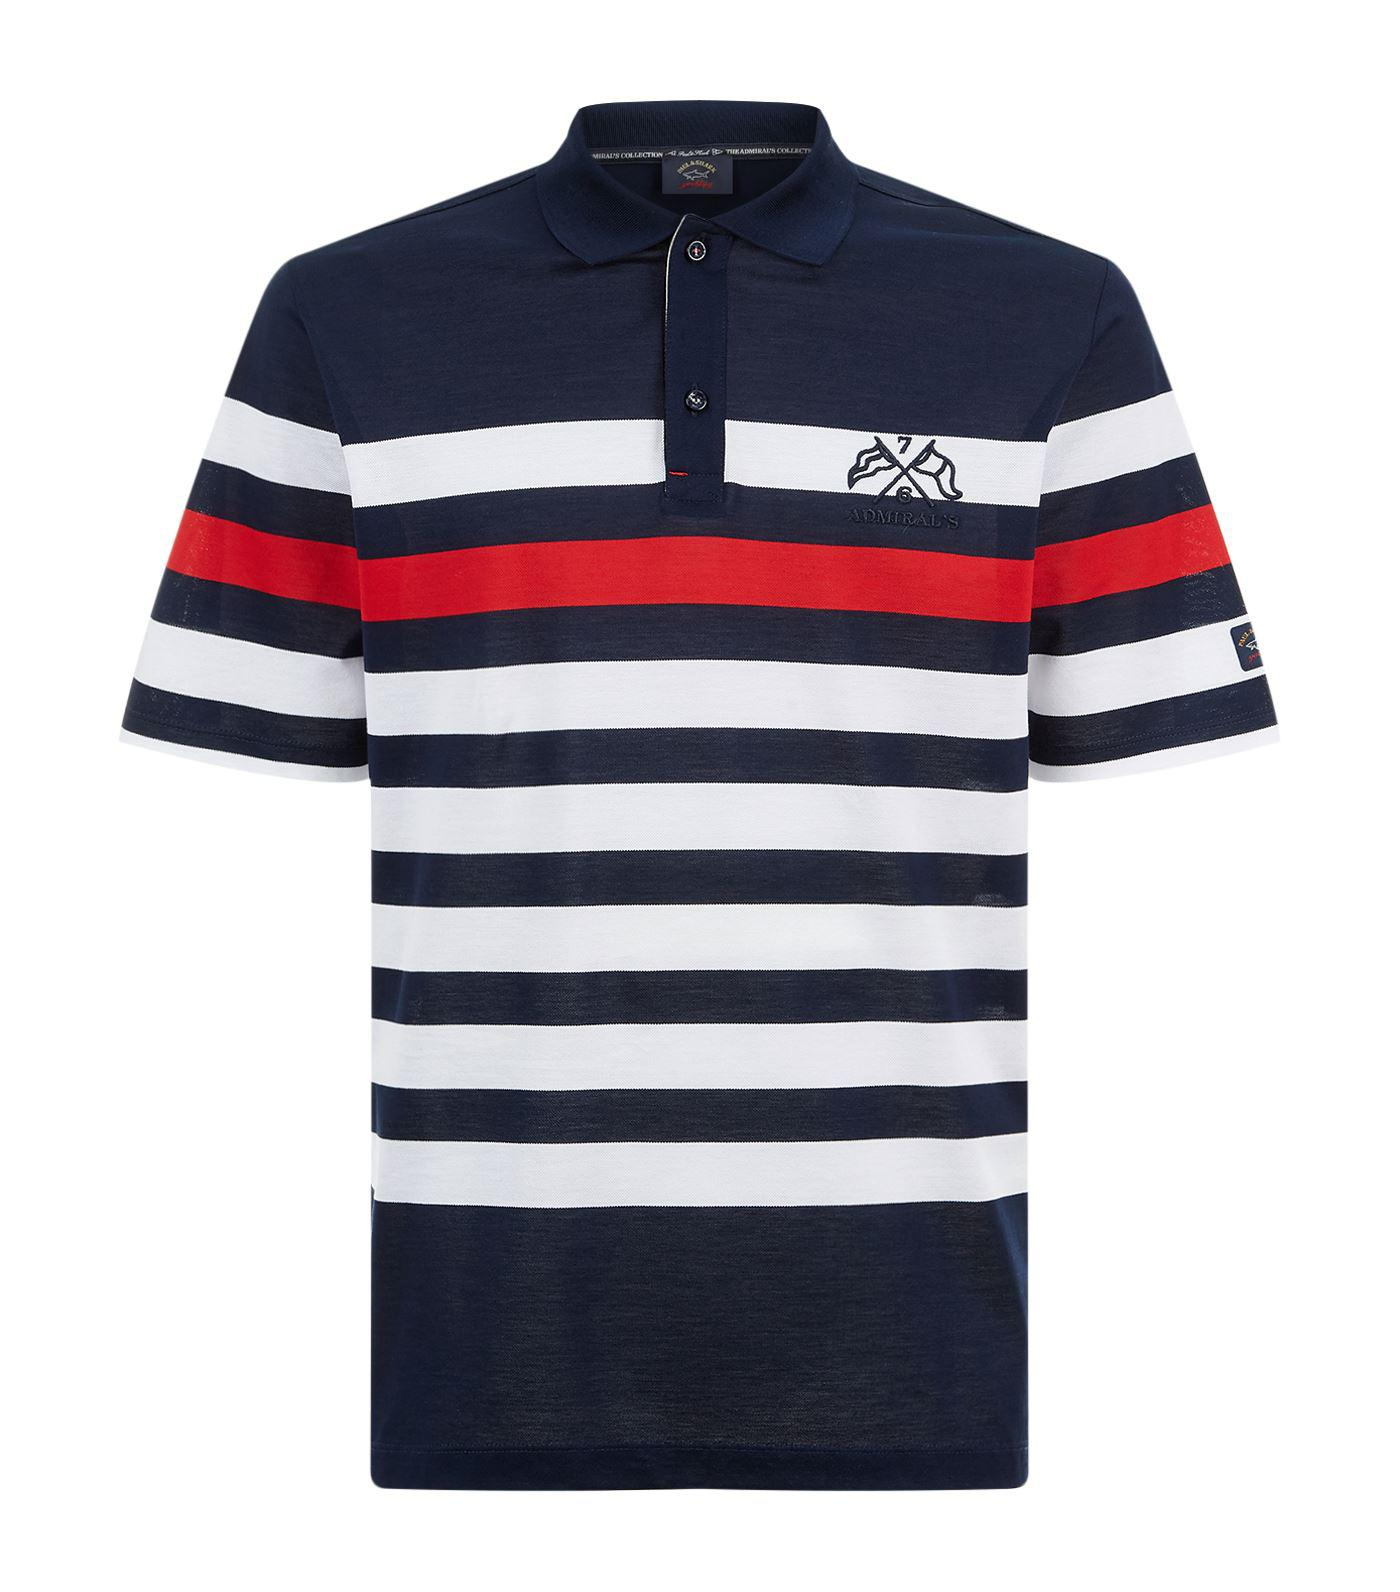 3948dce3 Paul & Shark Admiral Polo Shirt in Blue for Men - Lyst